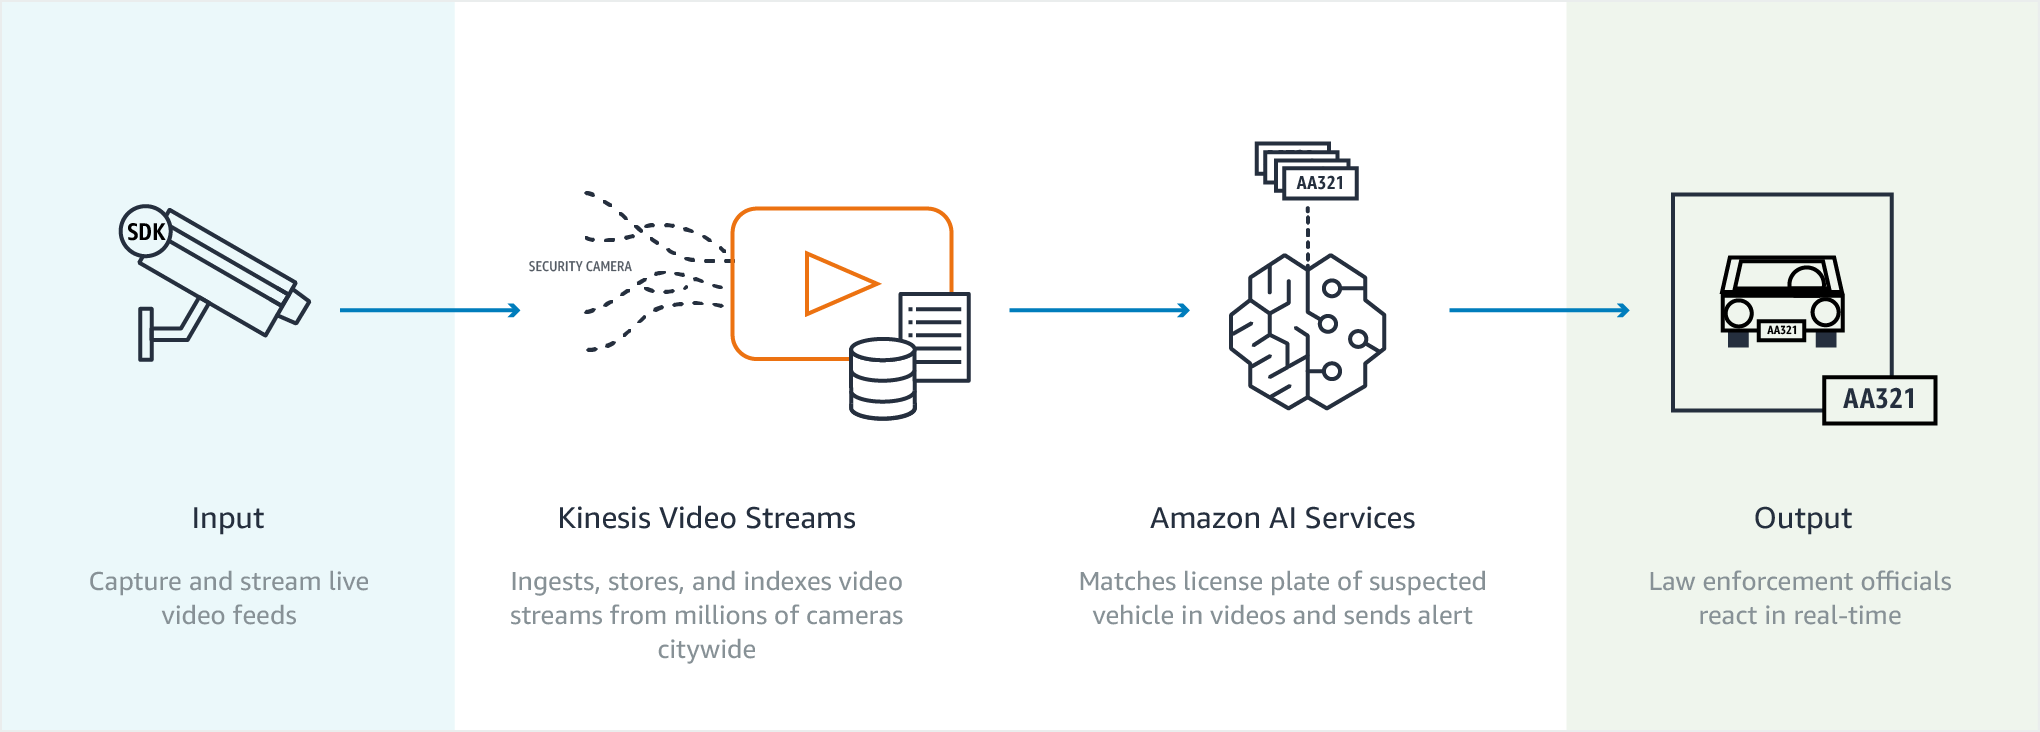 Amazon kinesis video streams consumo seguro de vdeo para anlise diagram kinesis video streams smart city use case ccuart Gallery